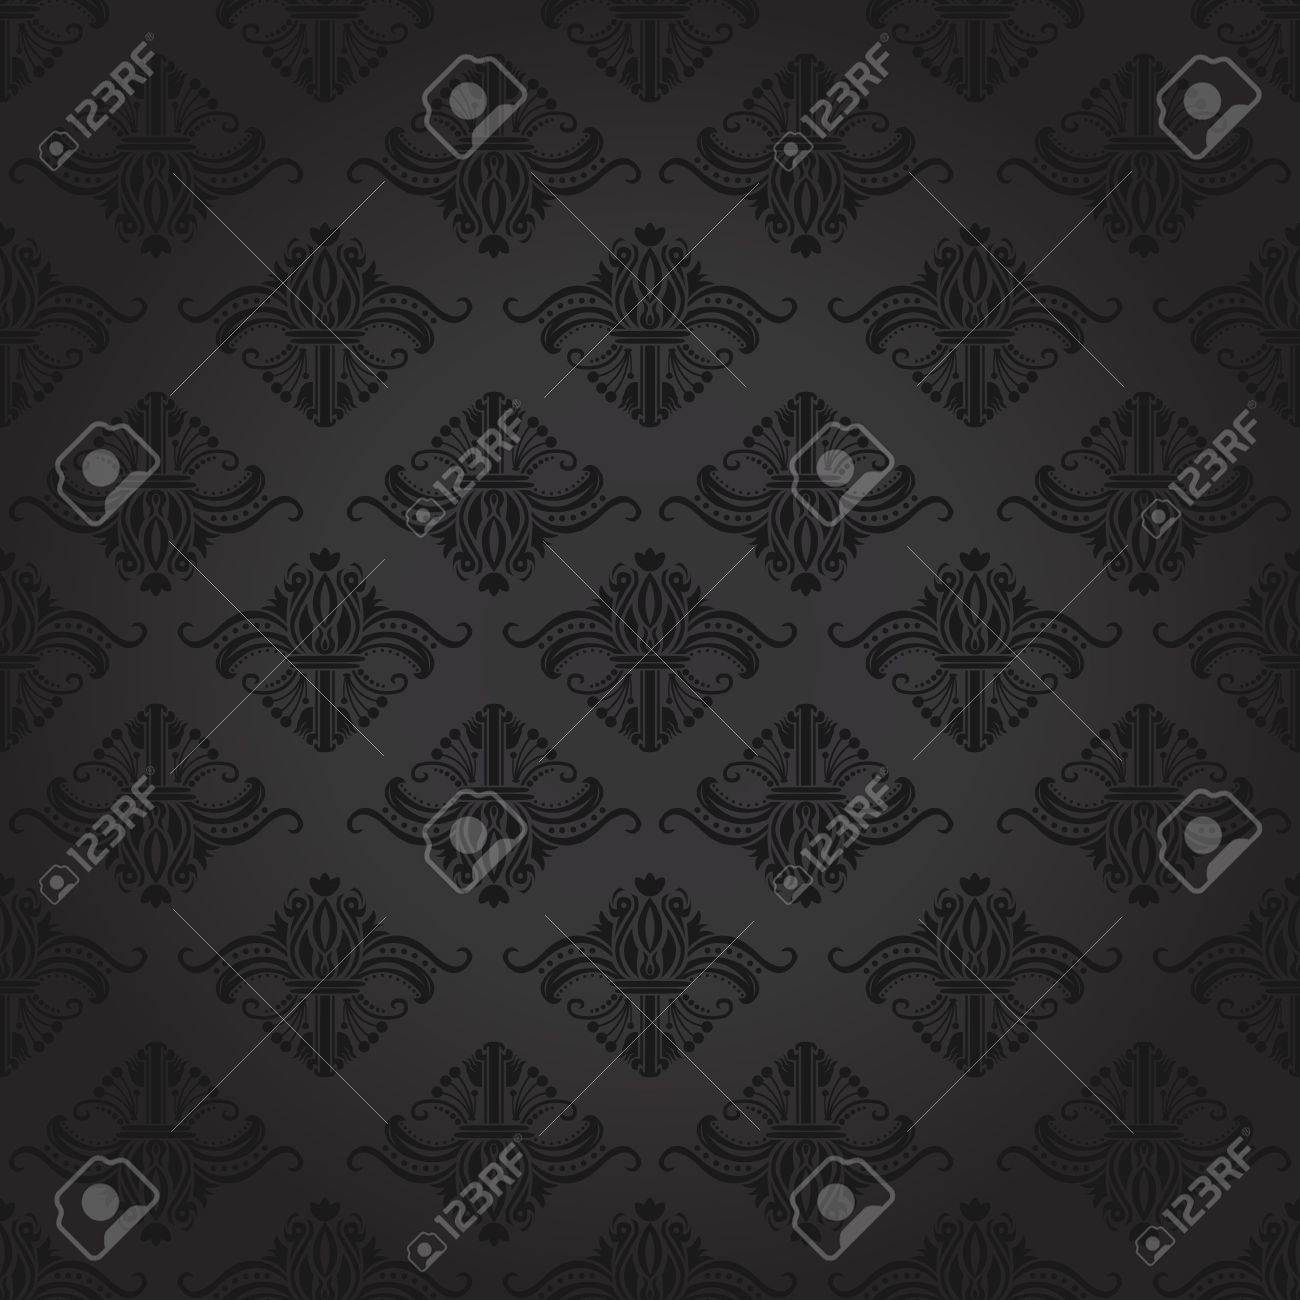 Seamless damask pattern for backgrounds and wallpapers. Stock Vector - 12034026